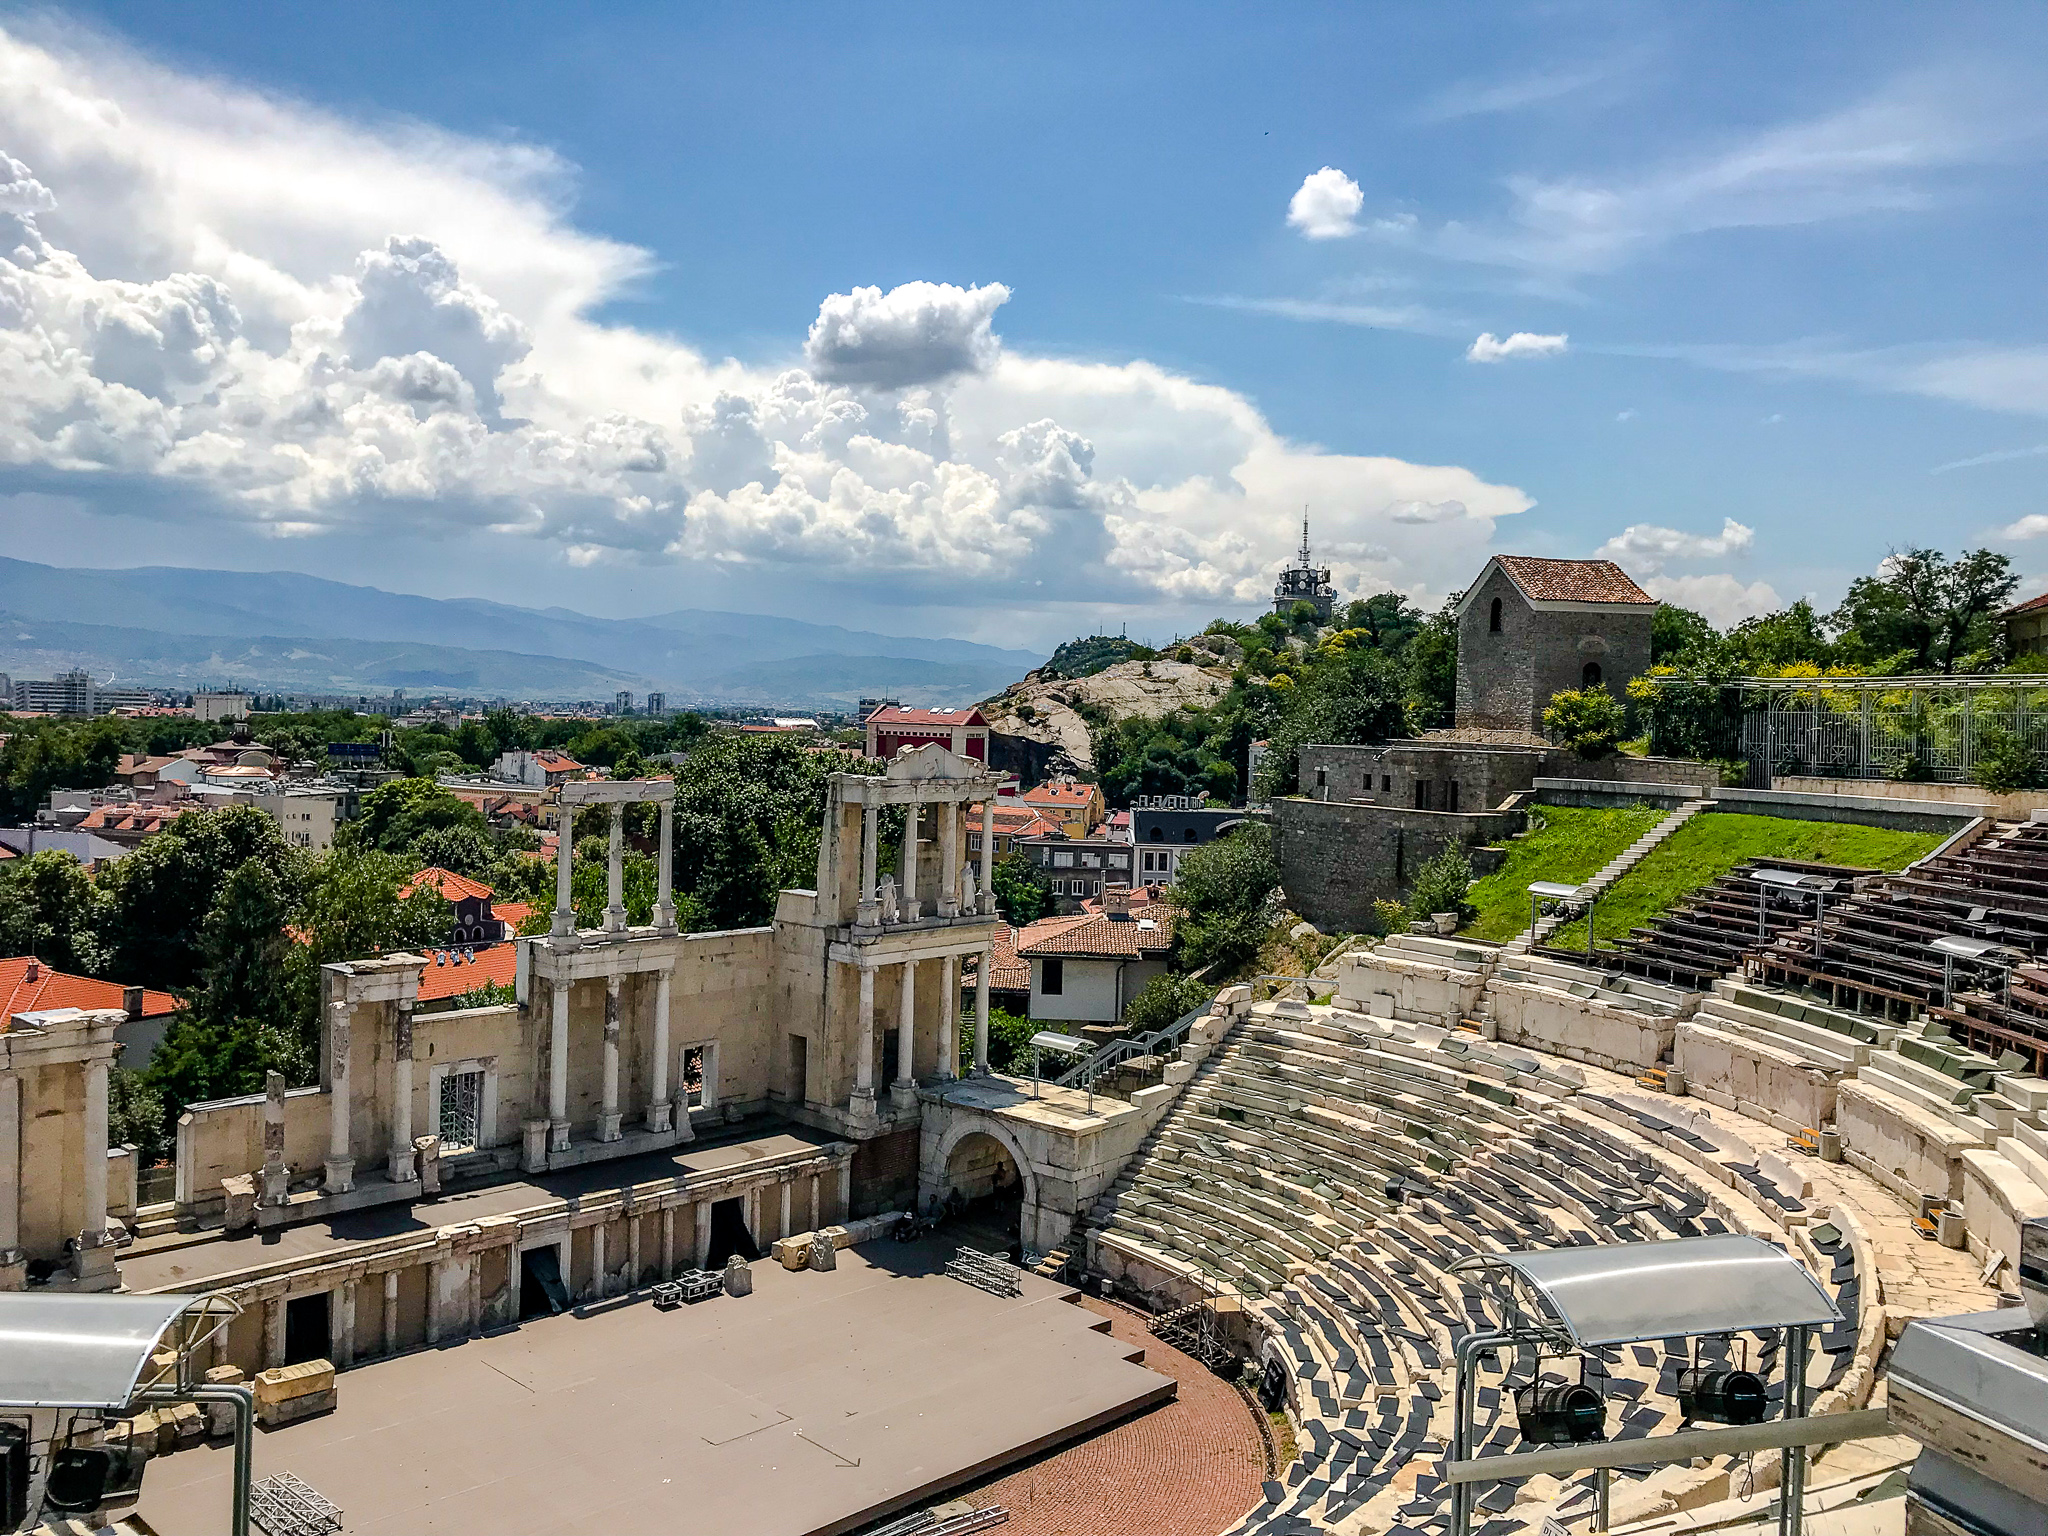 The Ancient Roman Amphitheatre in Plovdiv